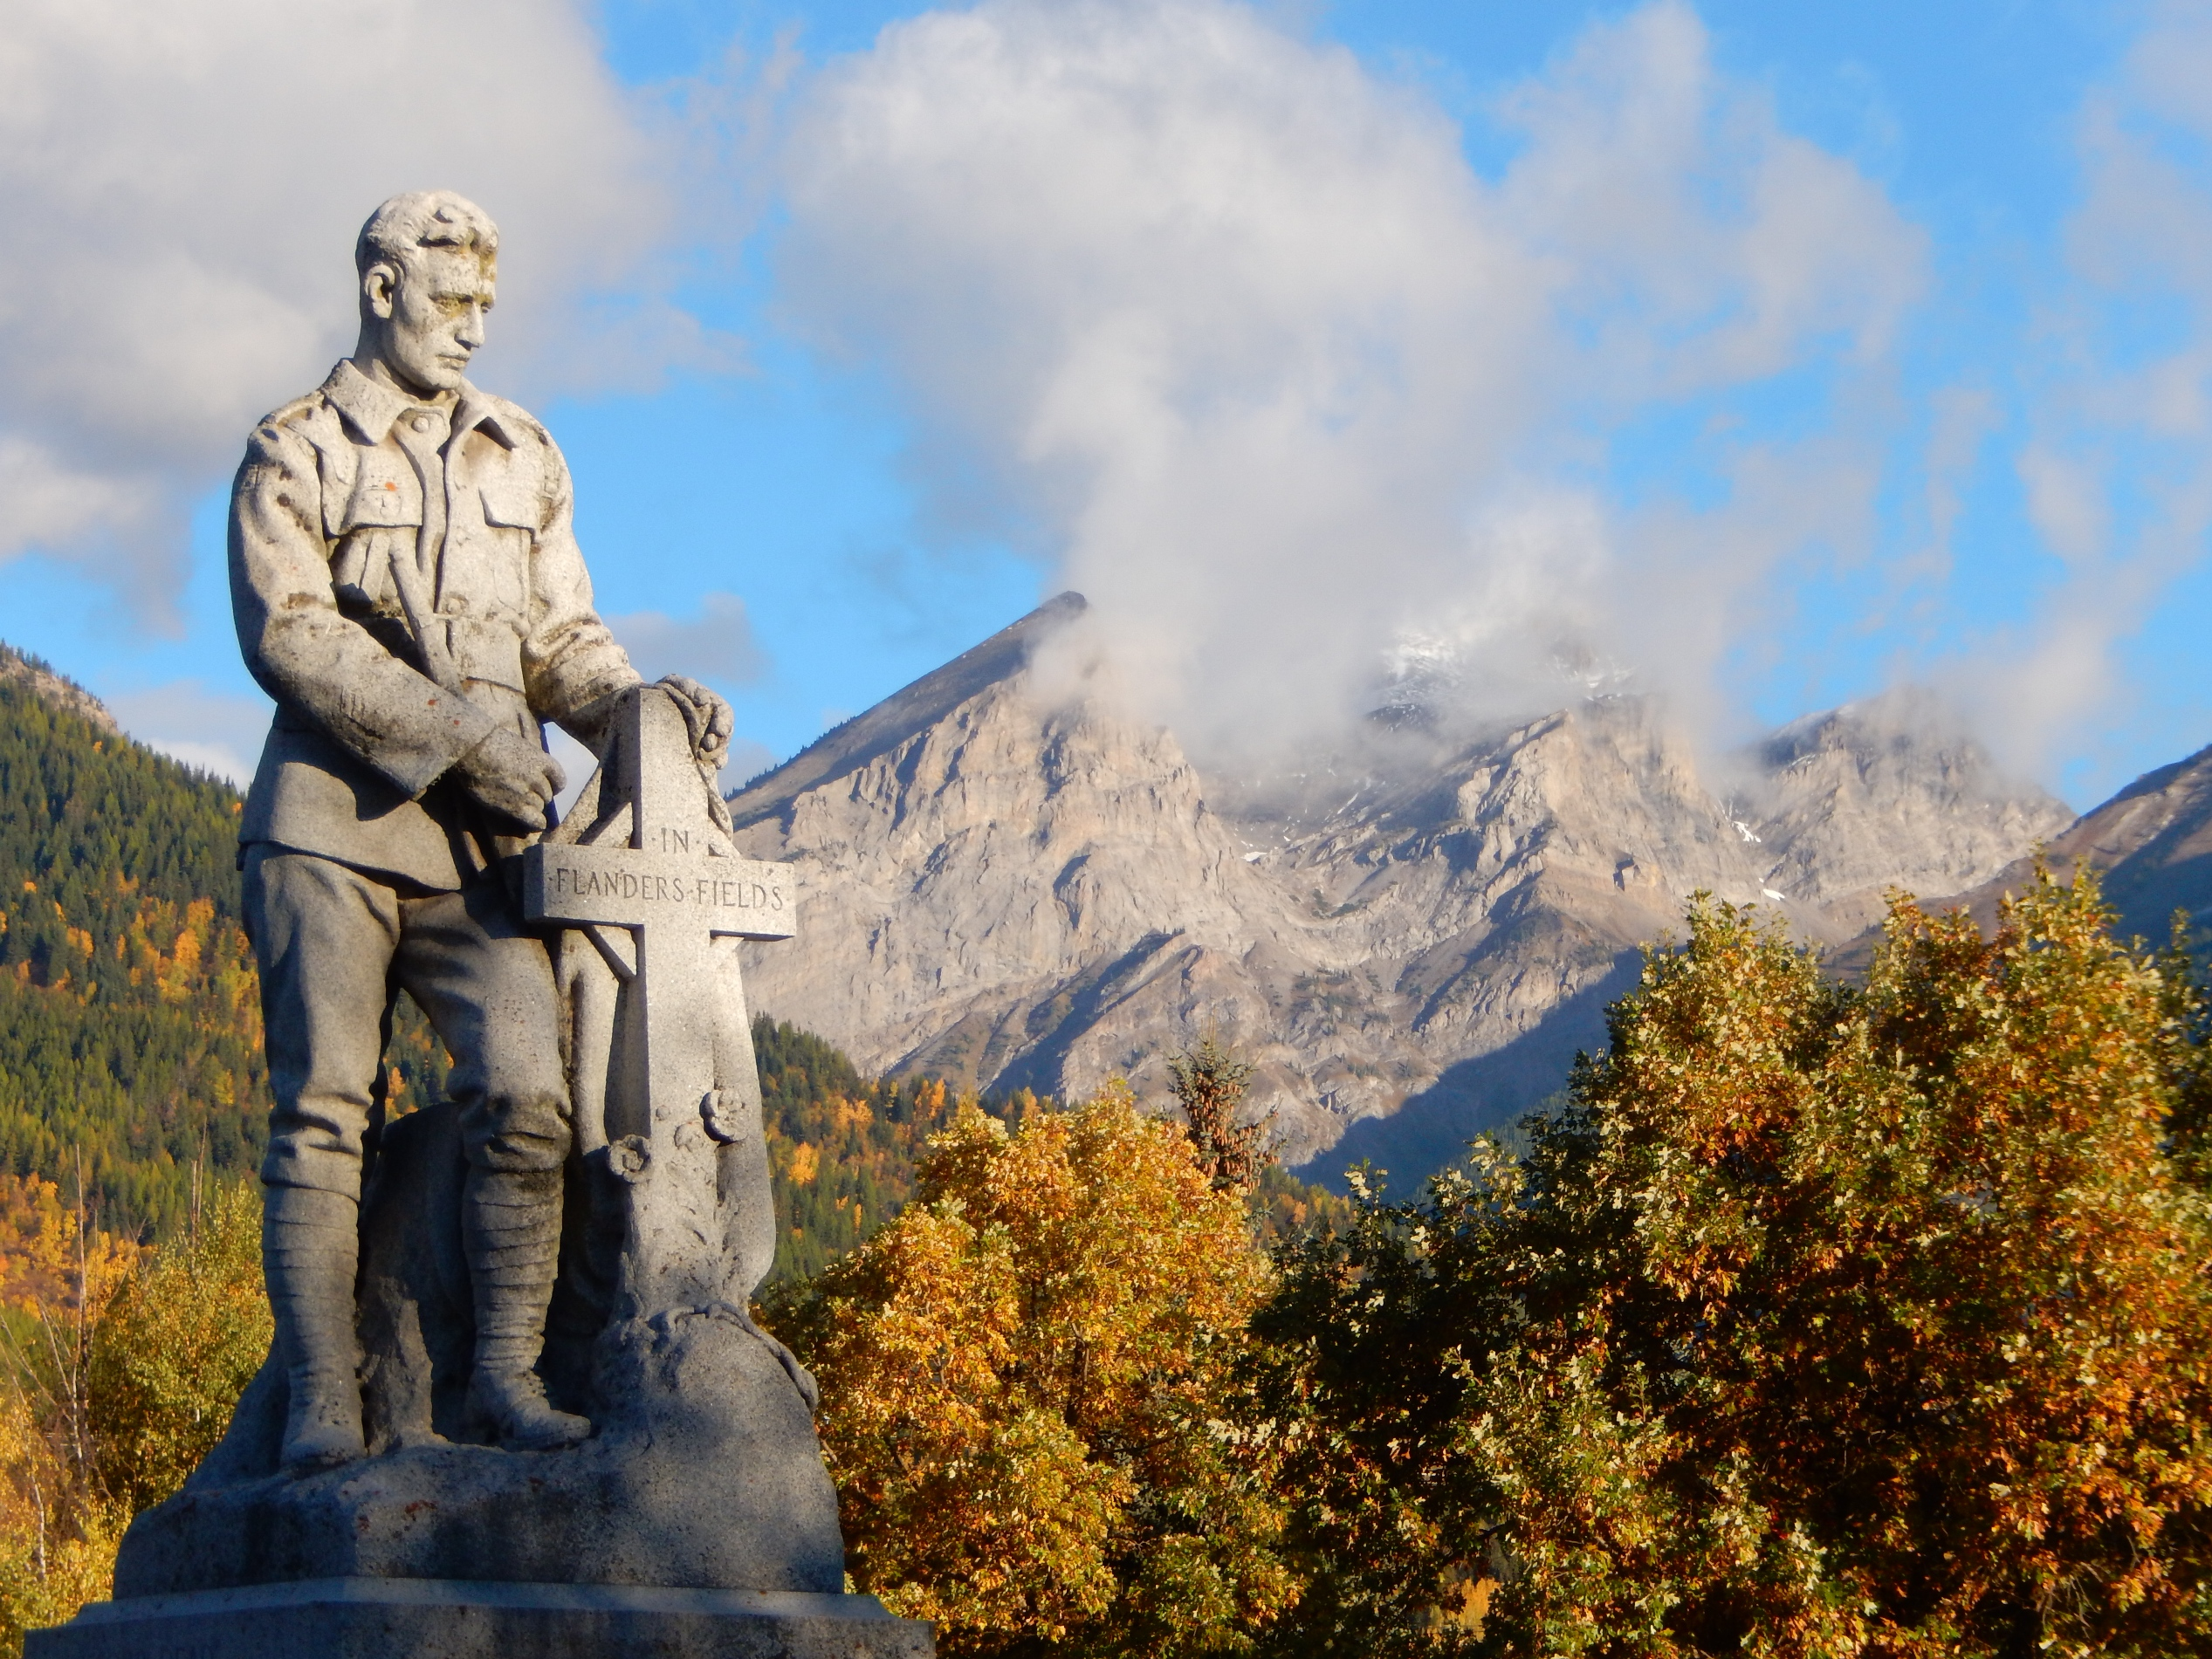 Fernie's war memorial is topped with the stature of a soldier in remembrance of all 114 men from Fernie who lost their lives in three wars. PHOTO: John Chalmers